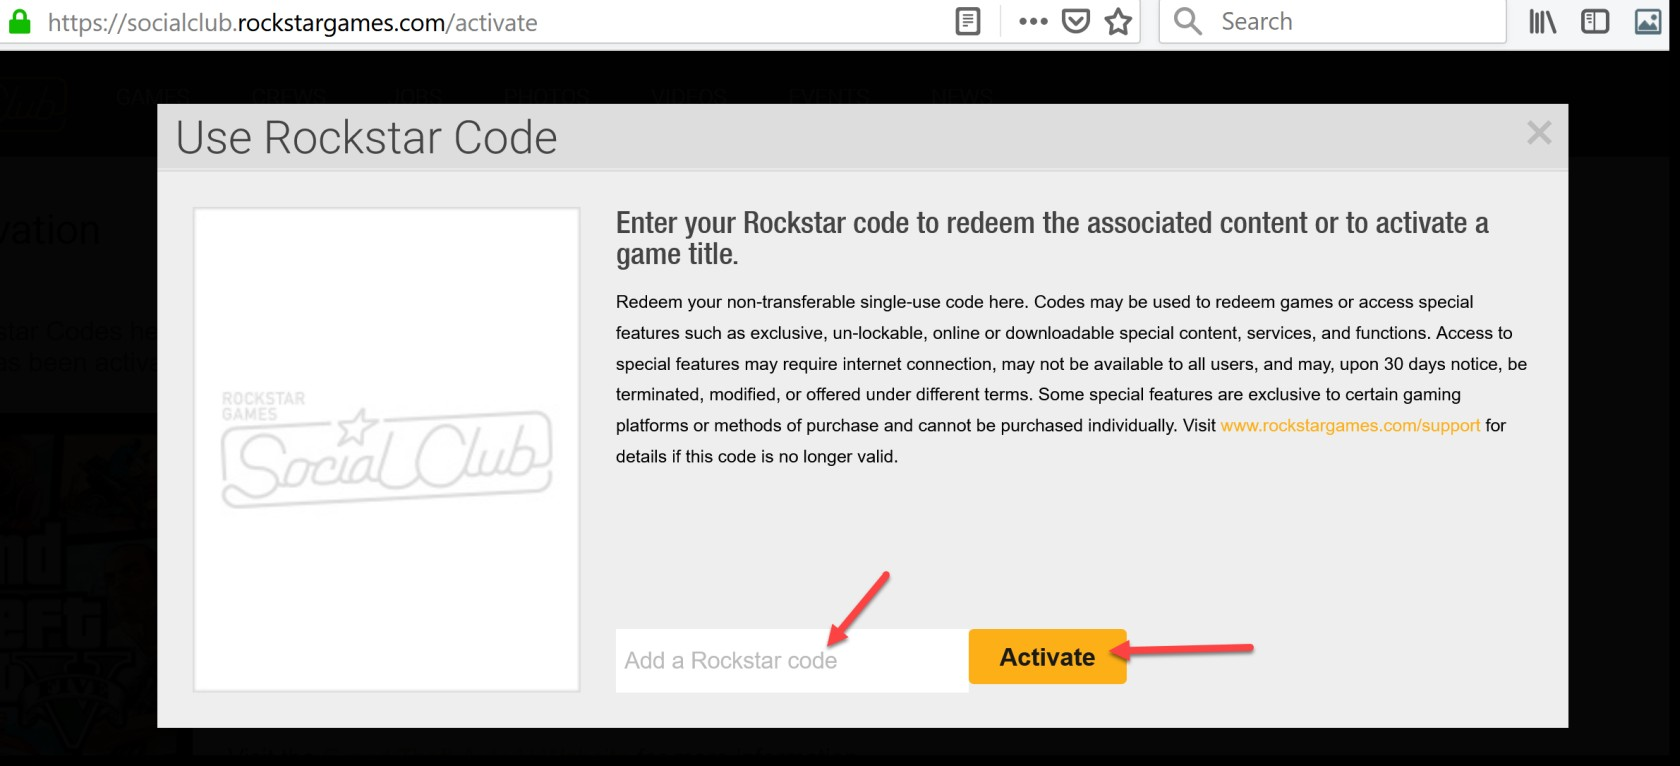 Activate a Product on Rockstar games